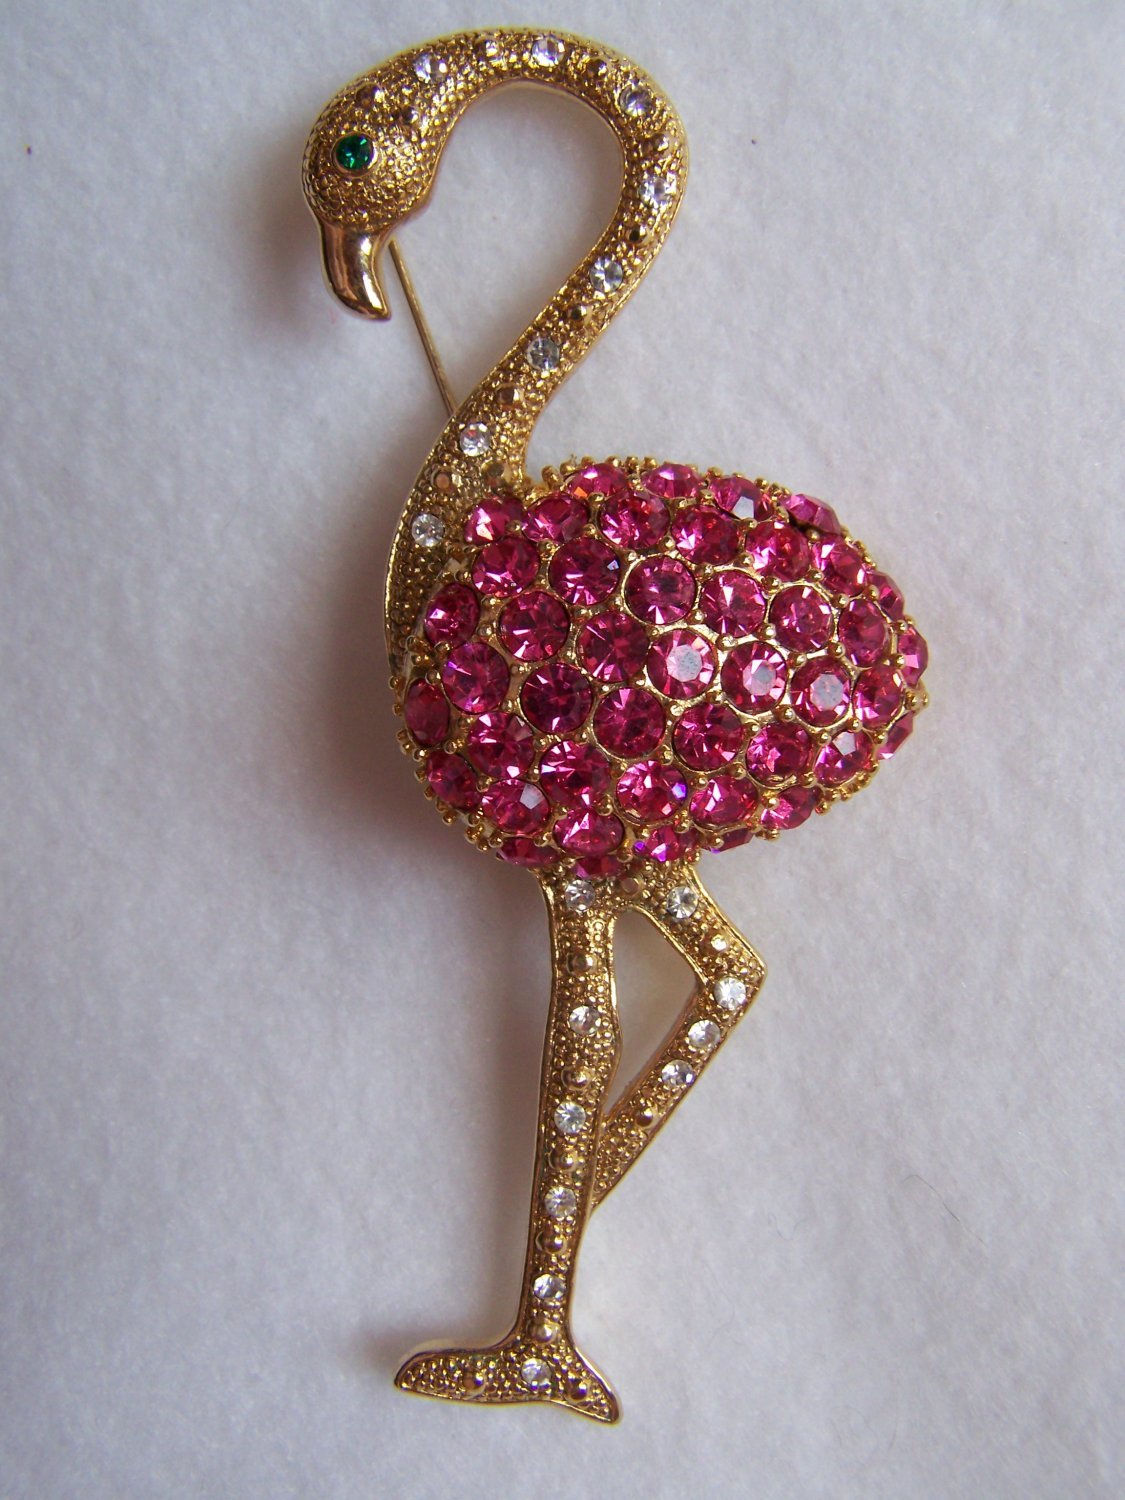 Vintage Pink Rhinestone Flamingo Pin Brooch Gold Tone Metal